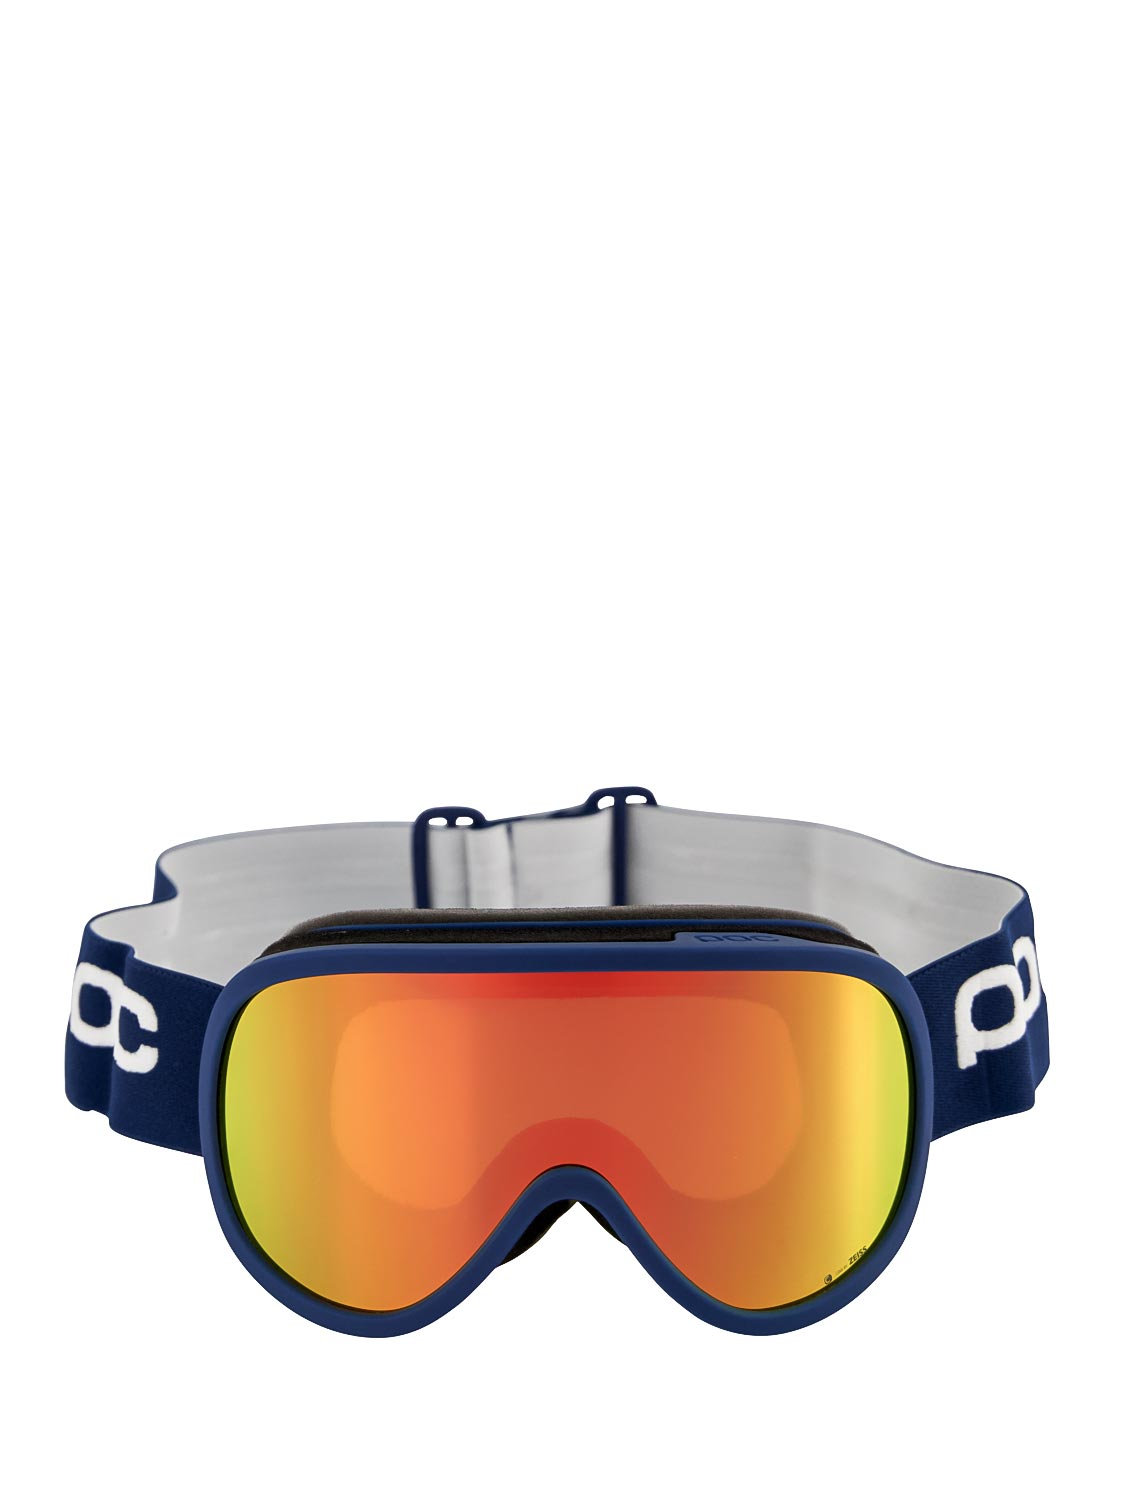 Poc Kids Ski Goggles Retina Clarity For For Boys And For Girls In Blau